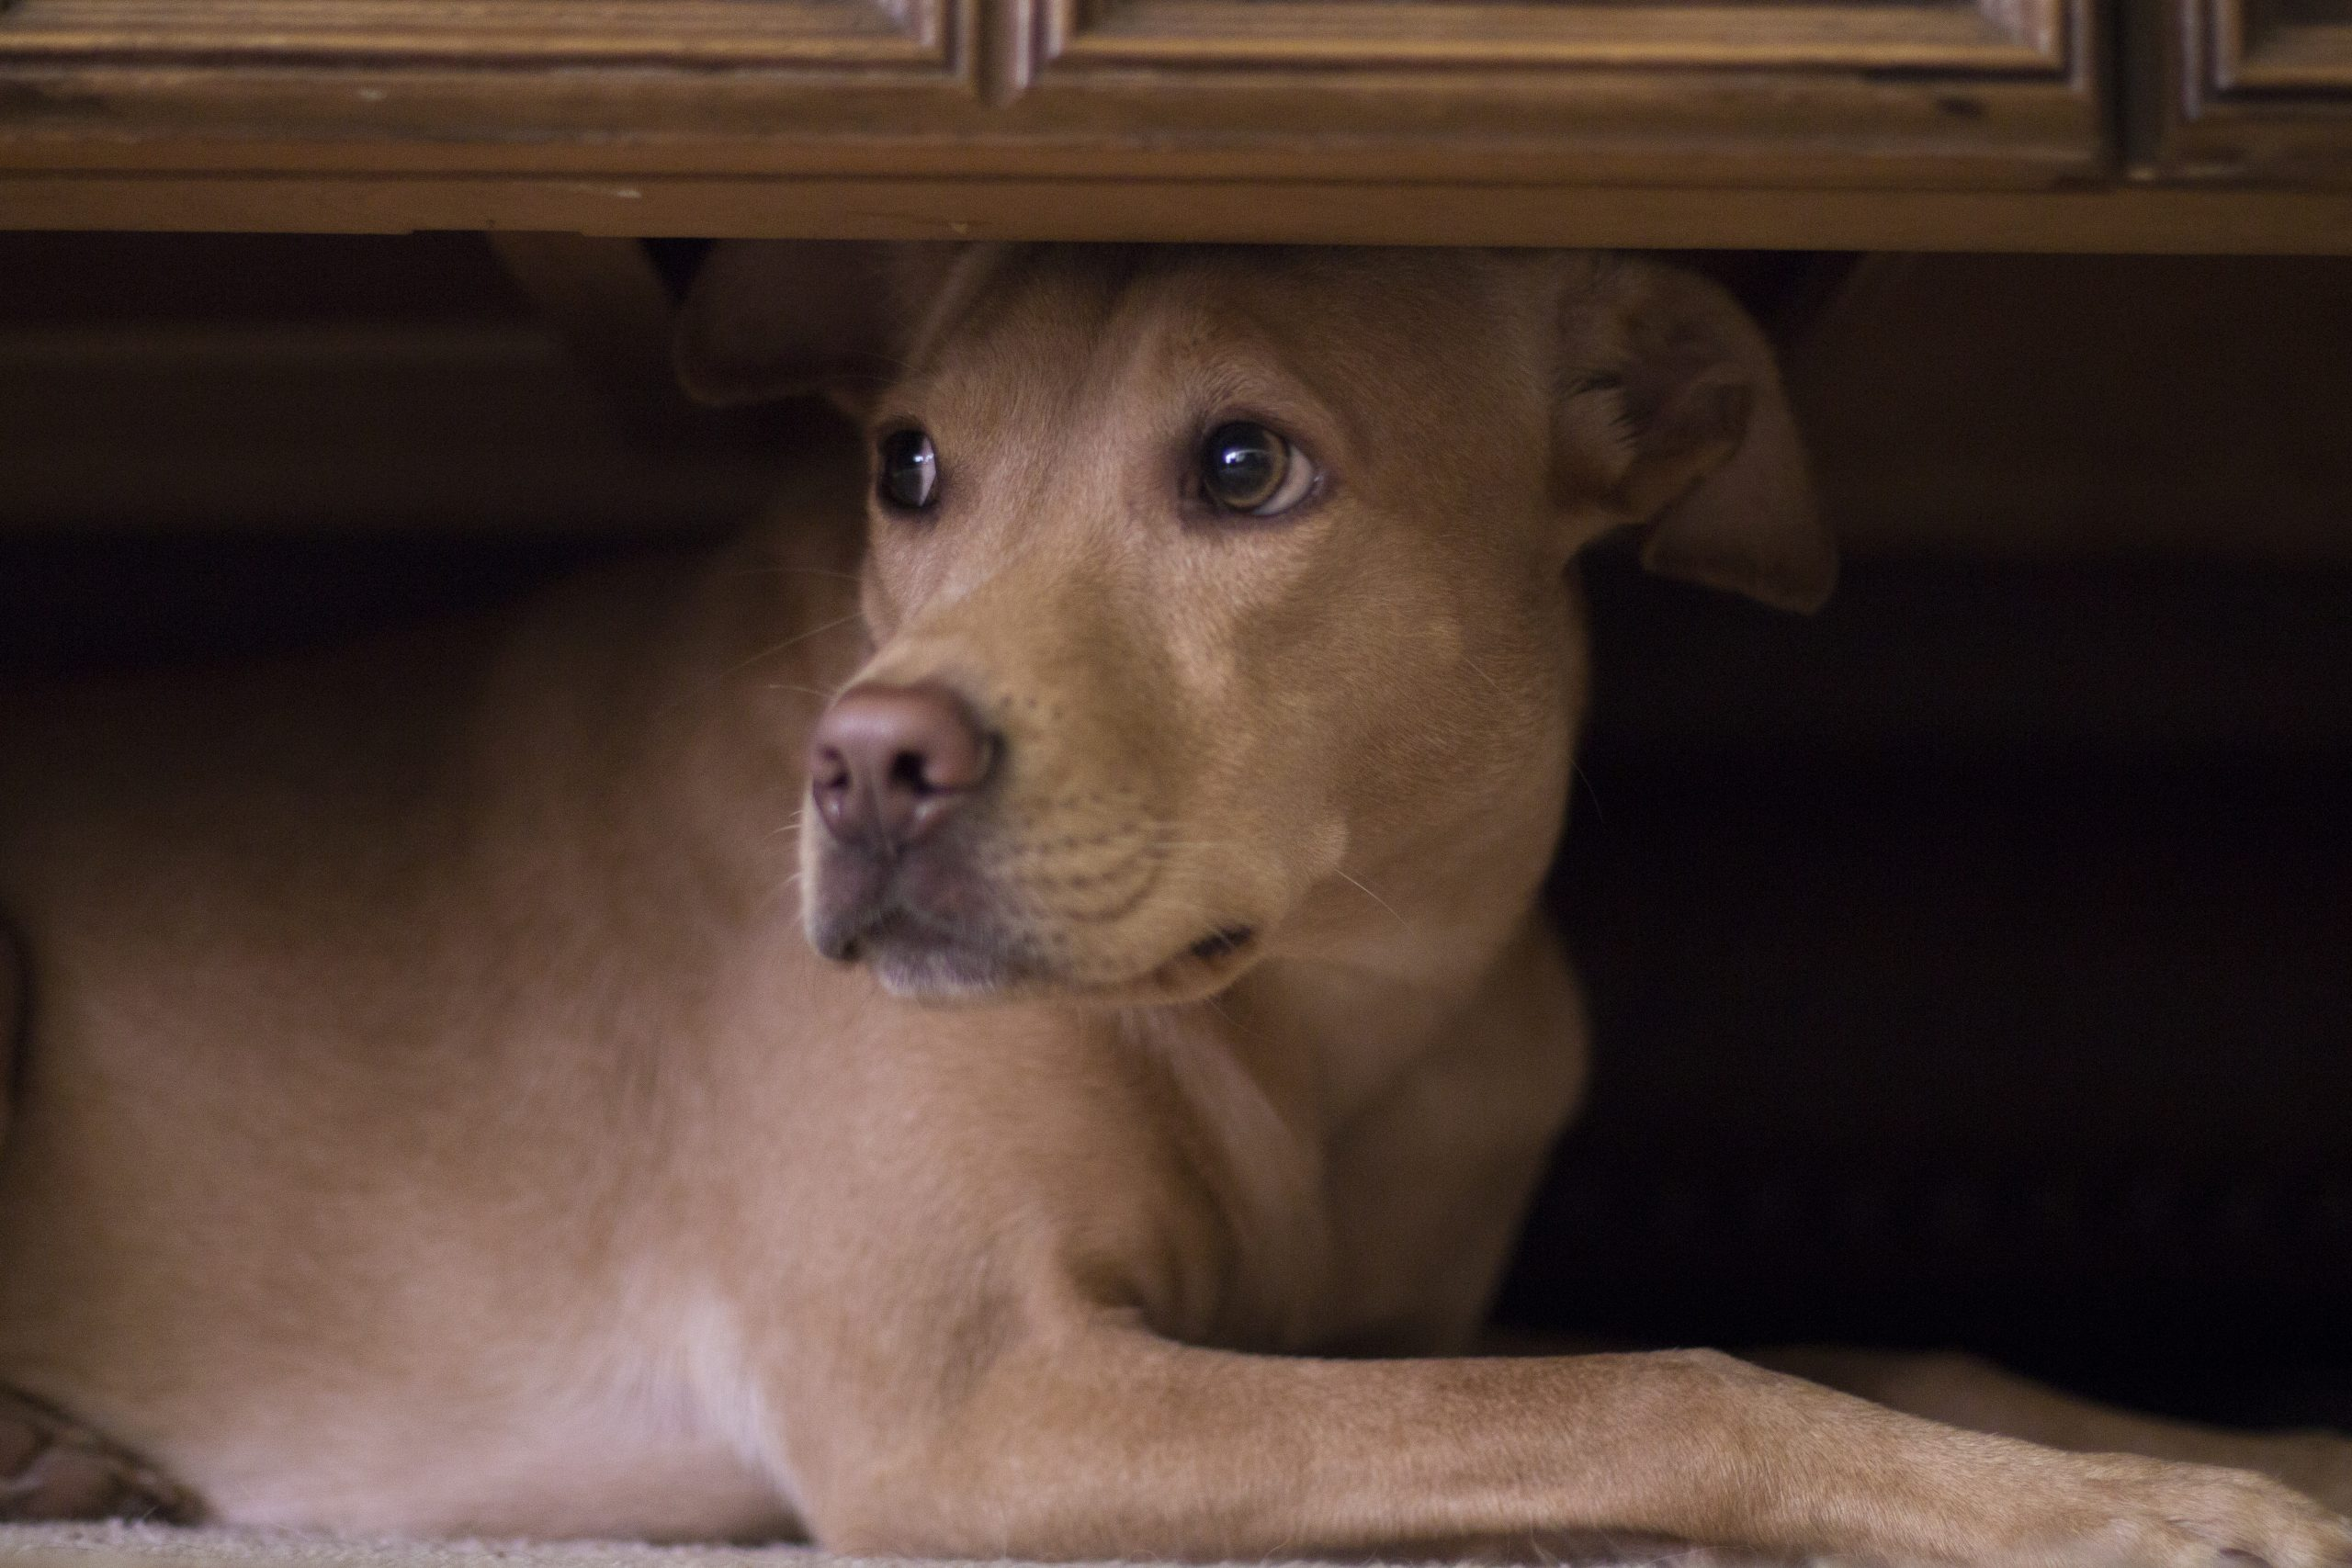 The thunder-phobic dog: tips for weathering the storm